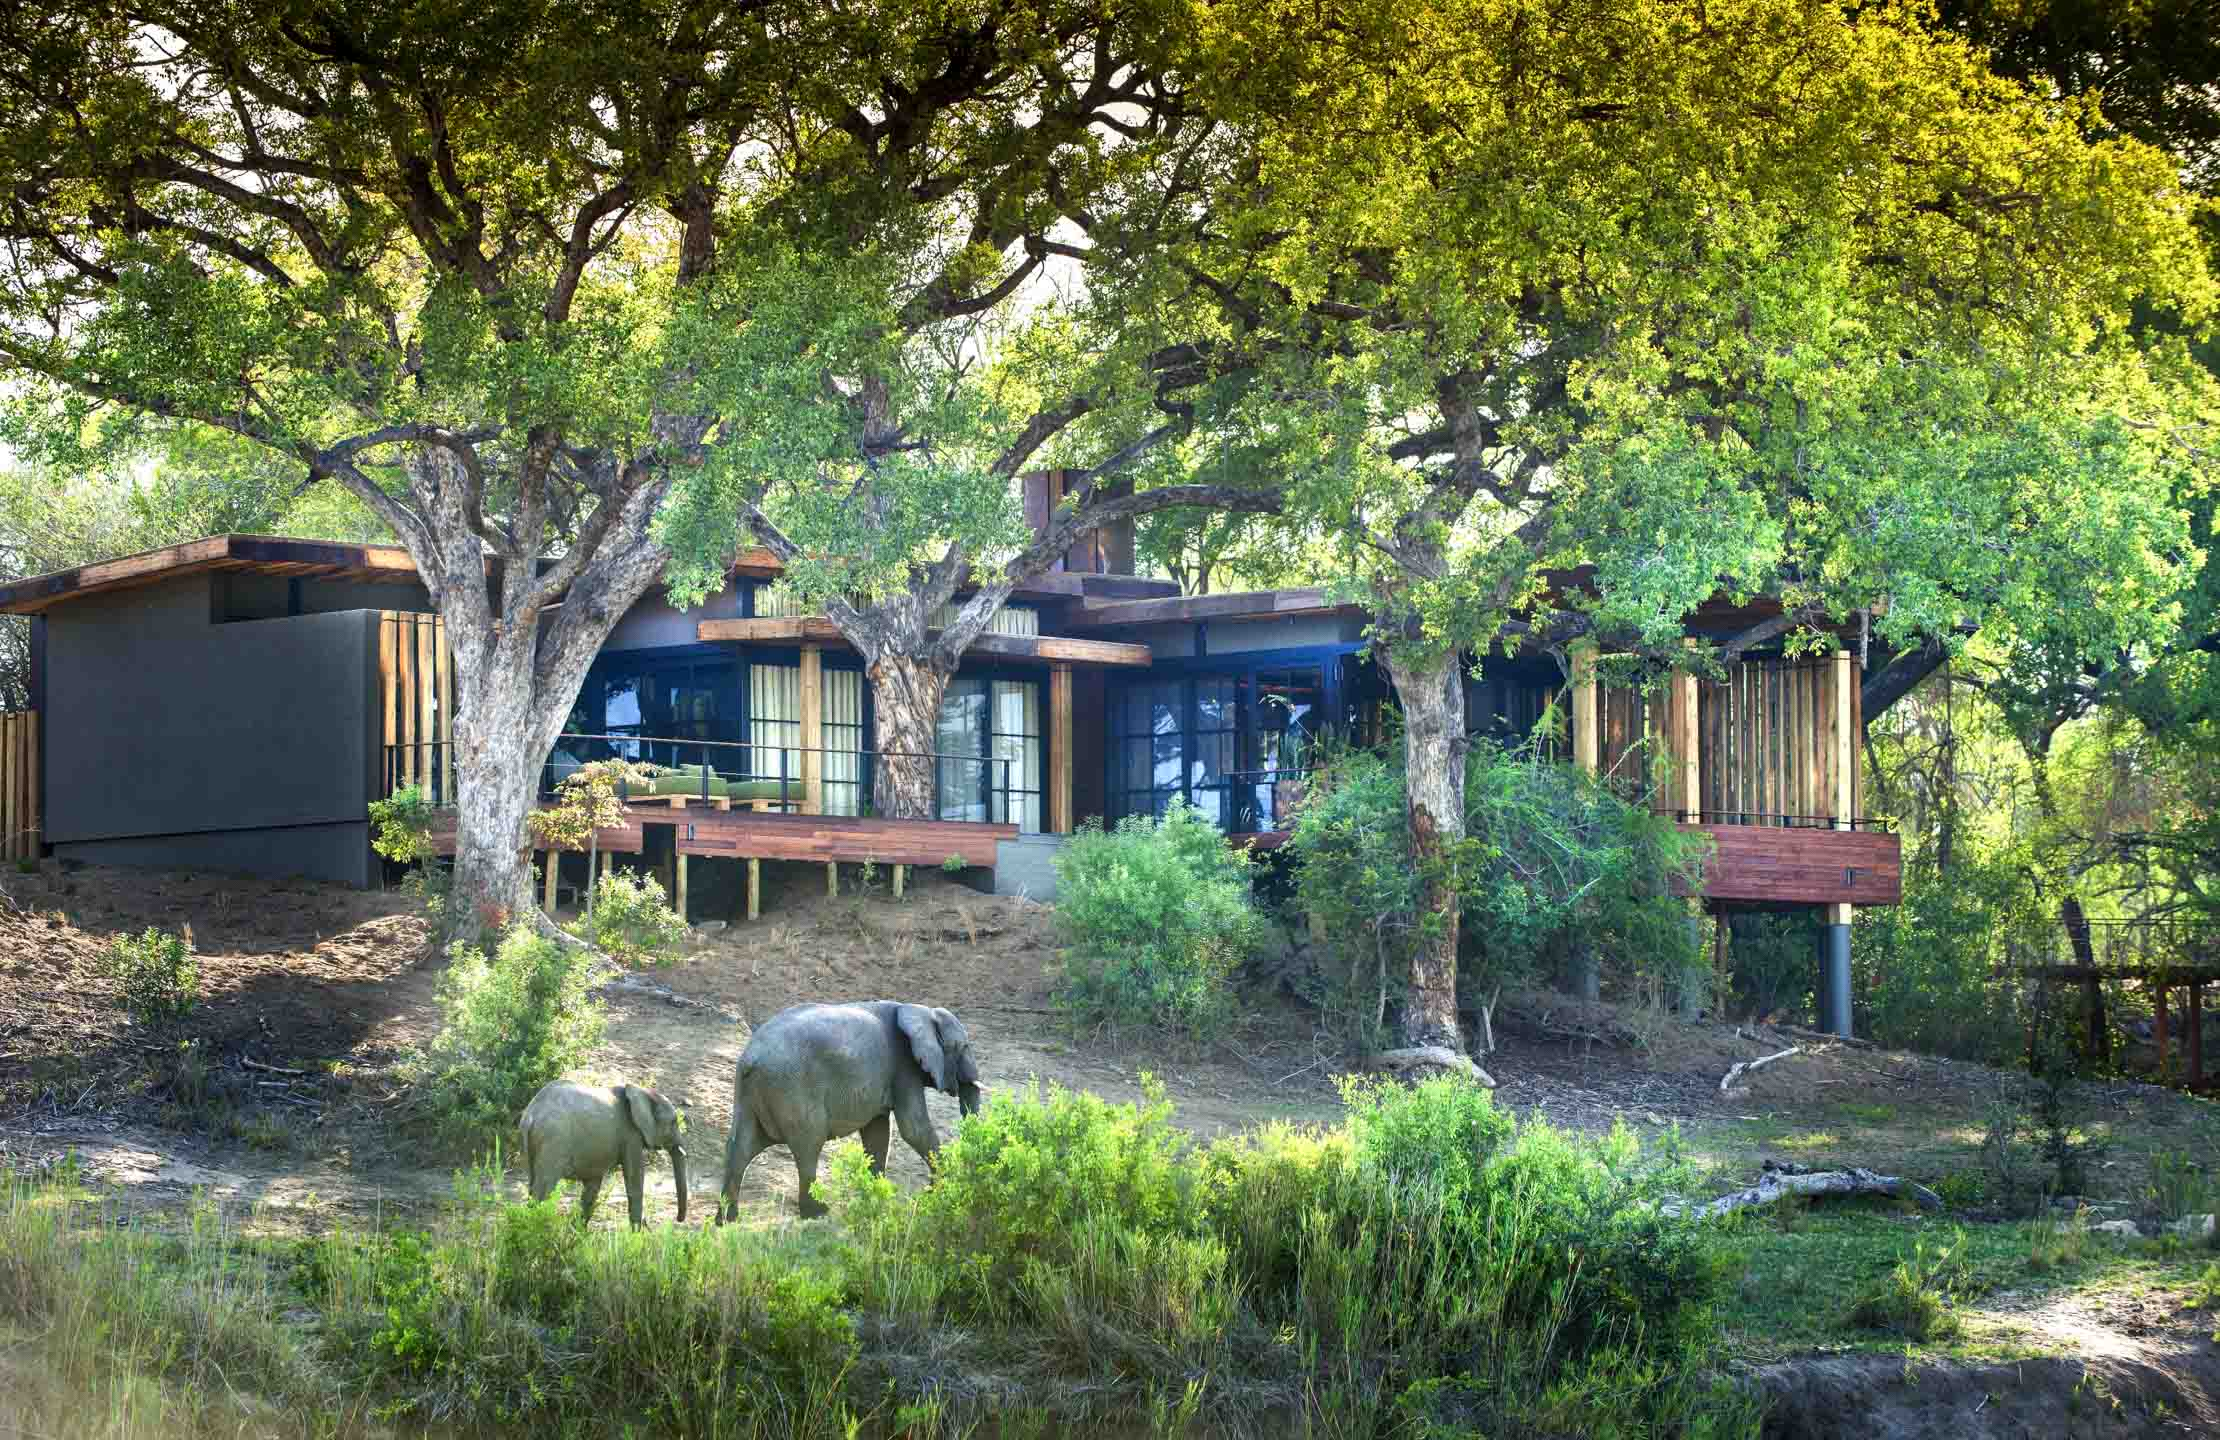 Elephants walk by exterior of Tengile River Lodge suite